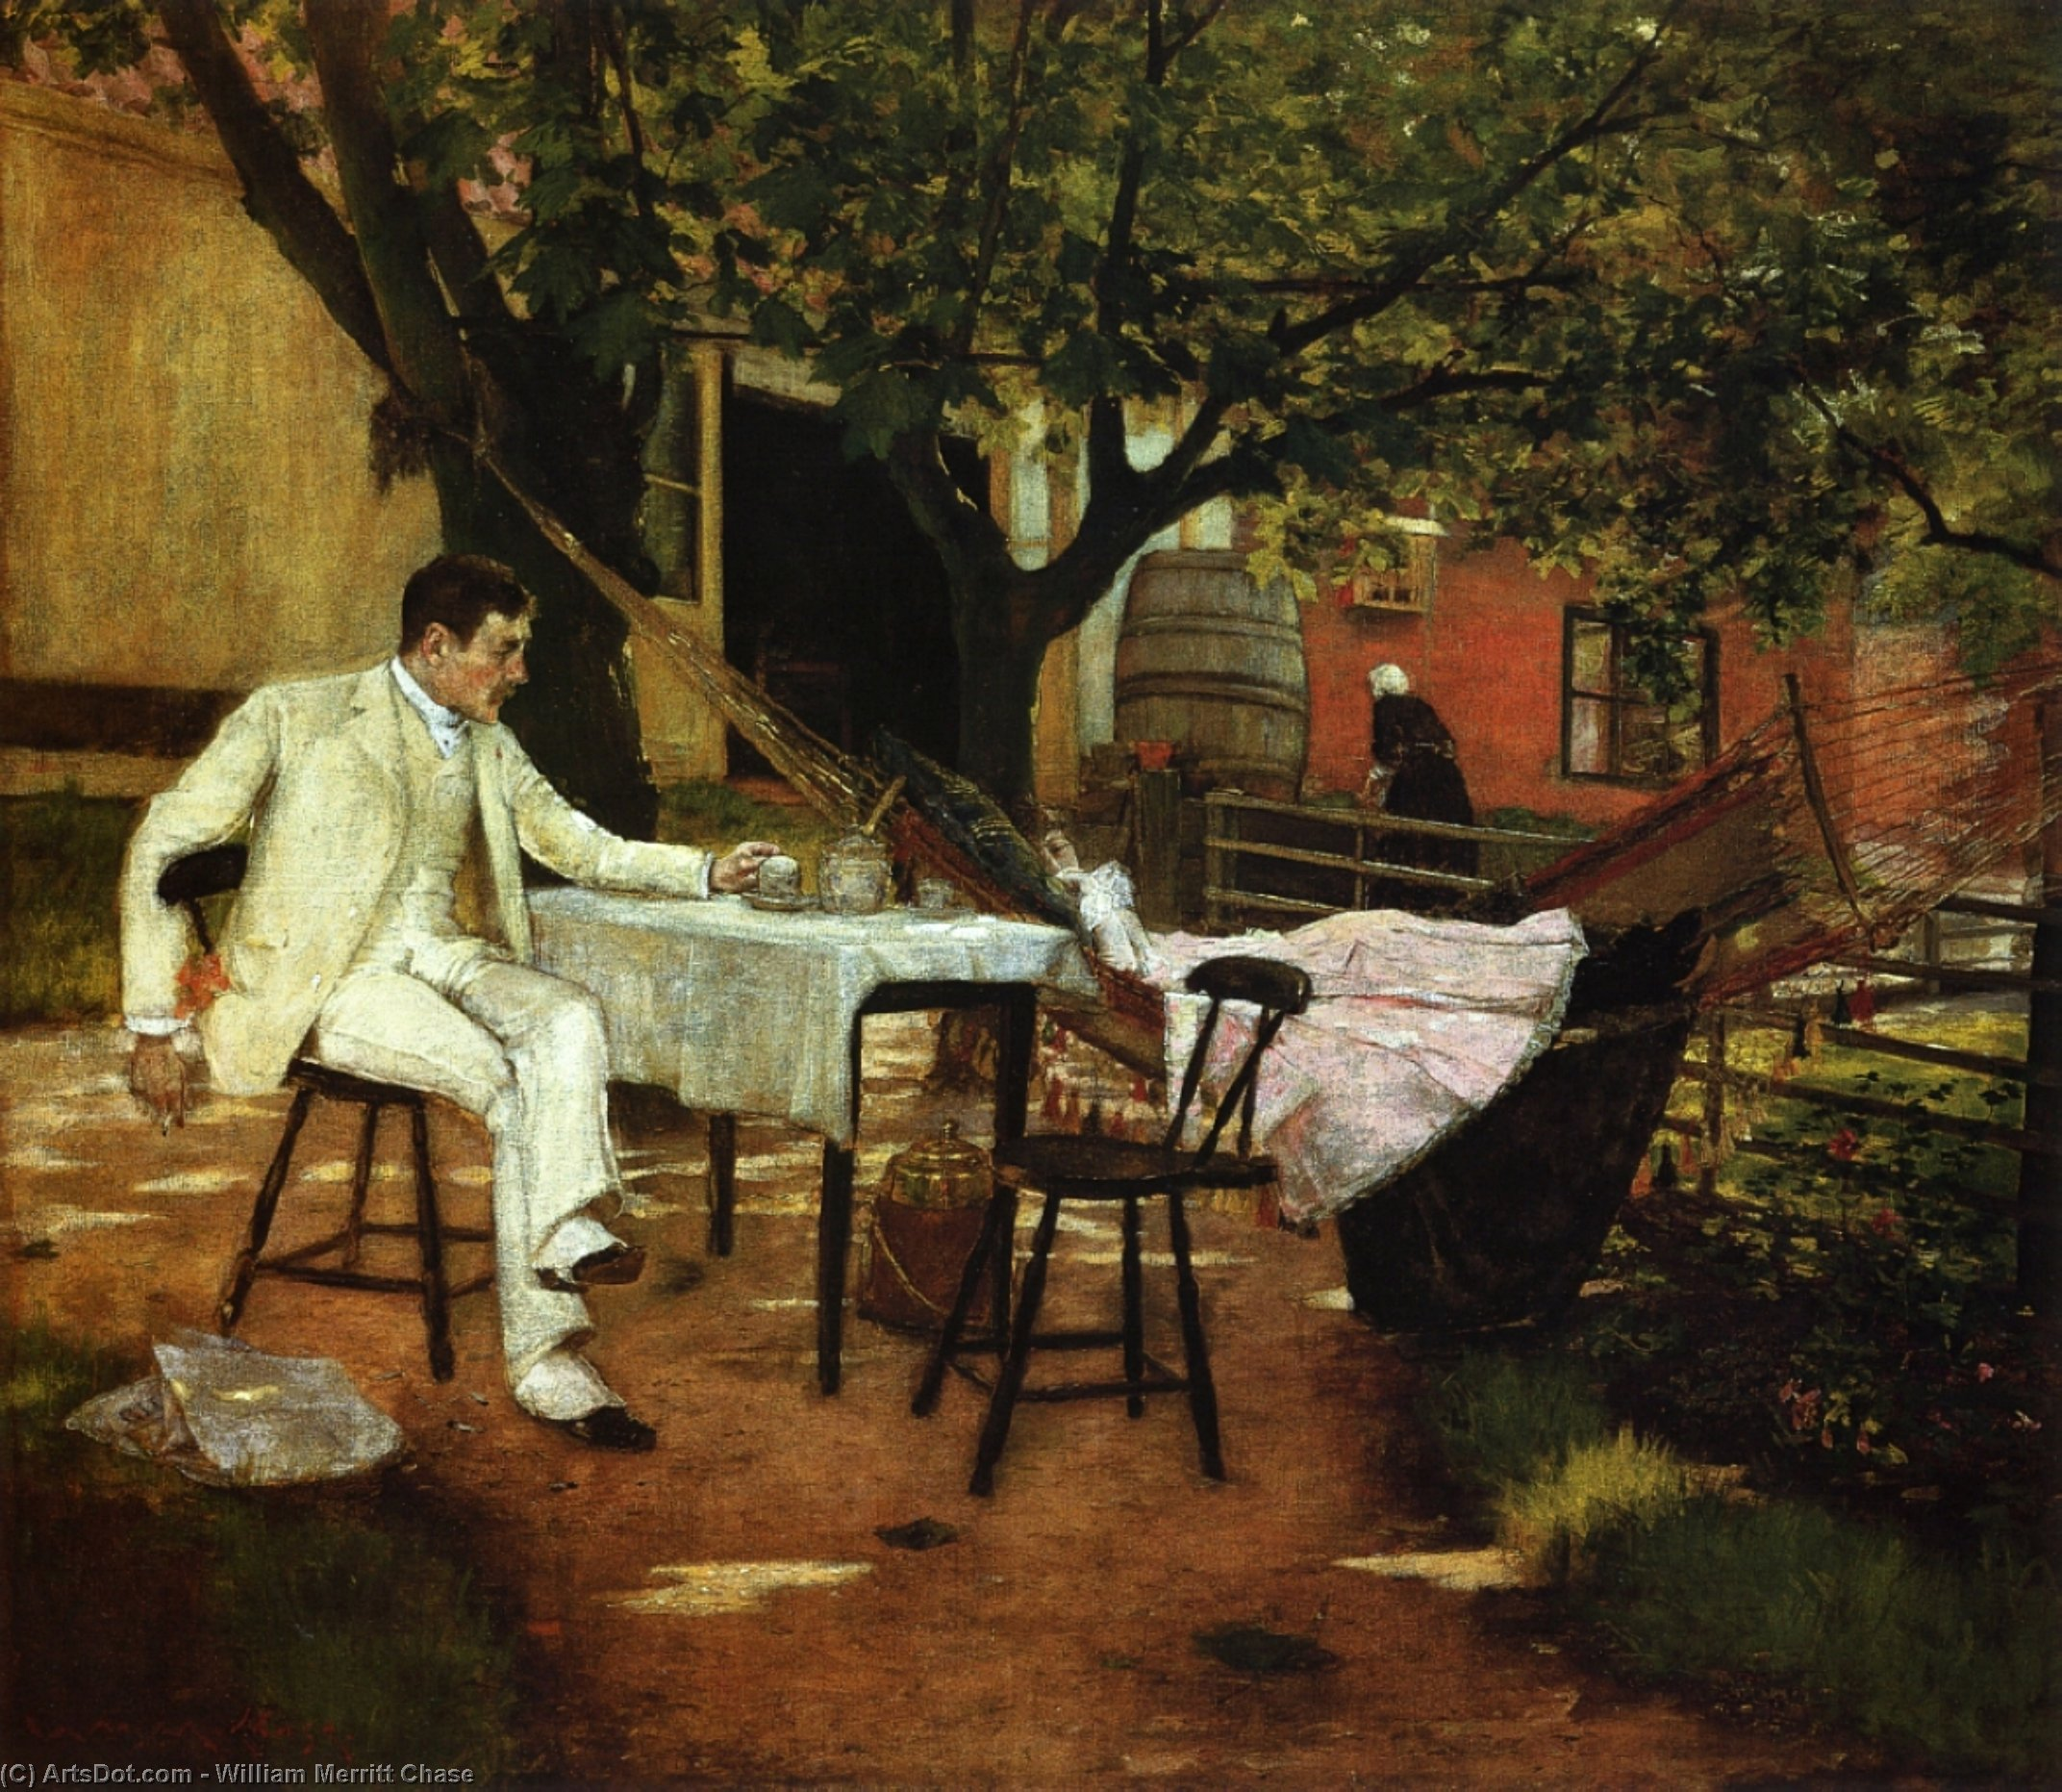 un'estate Afternon in olanda ( noto anche come luce del sole e ombra ), pittura di William Merritt Chase (1849-1916, United States)